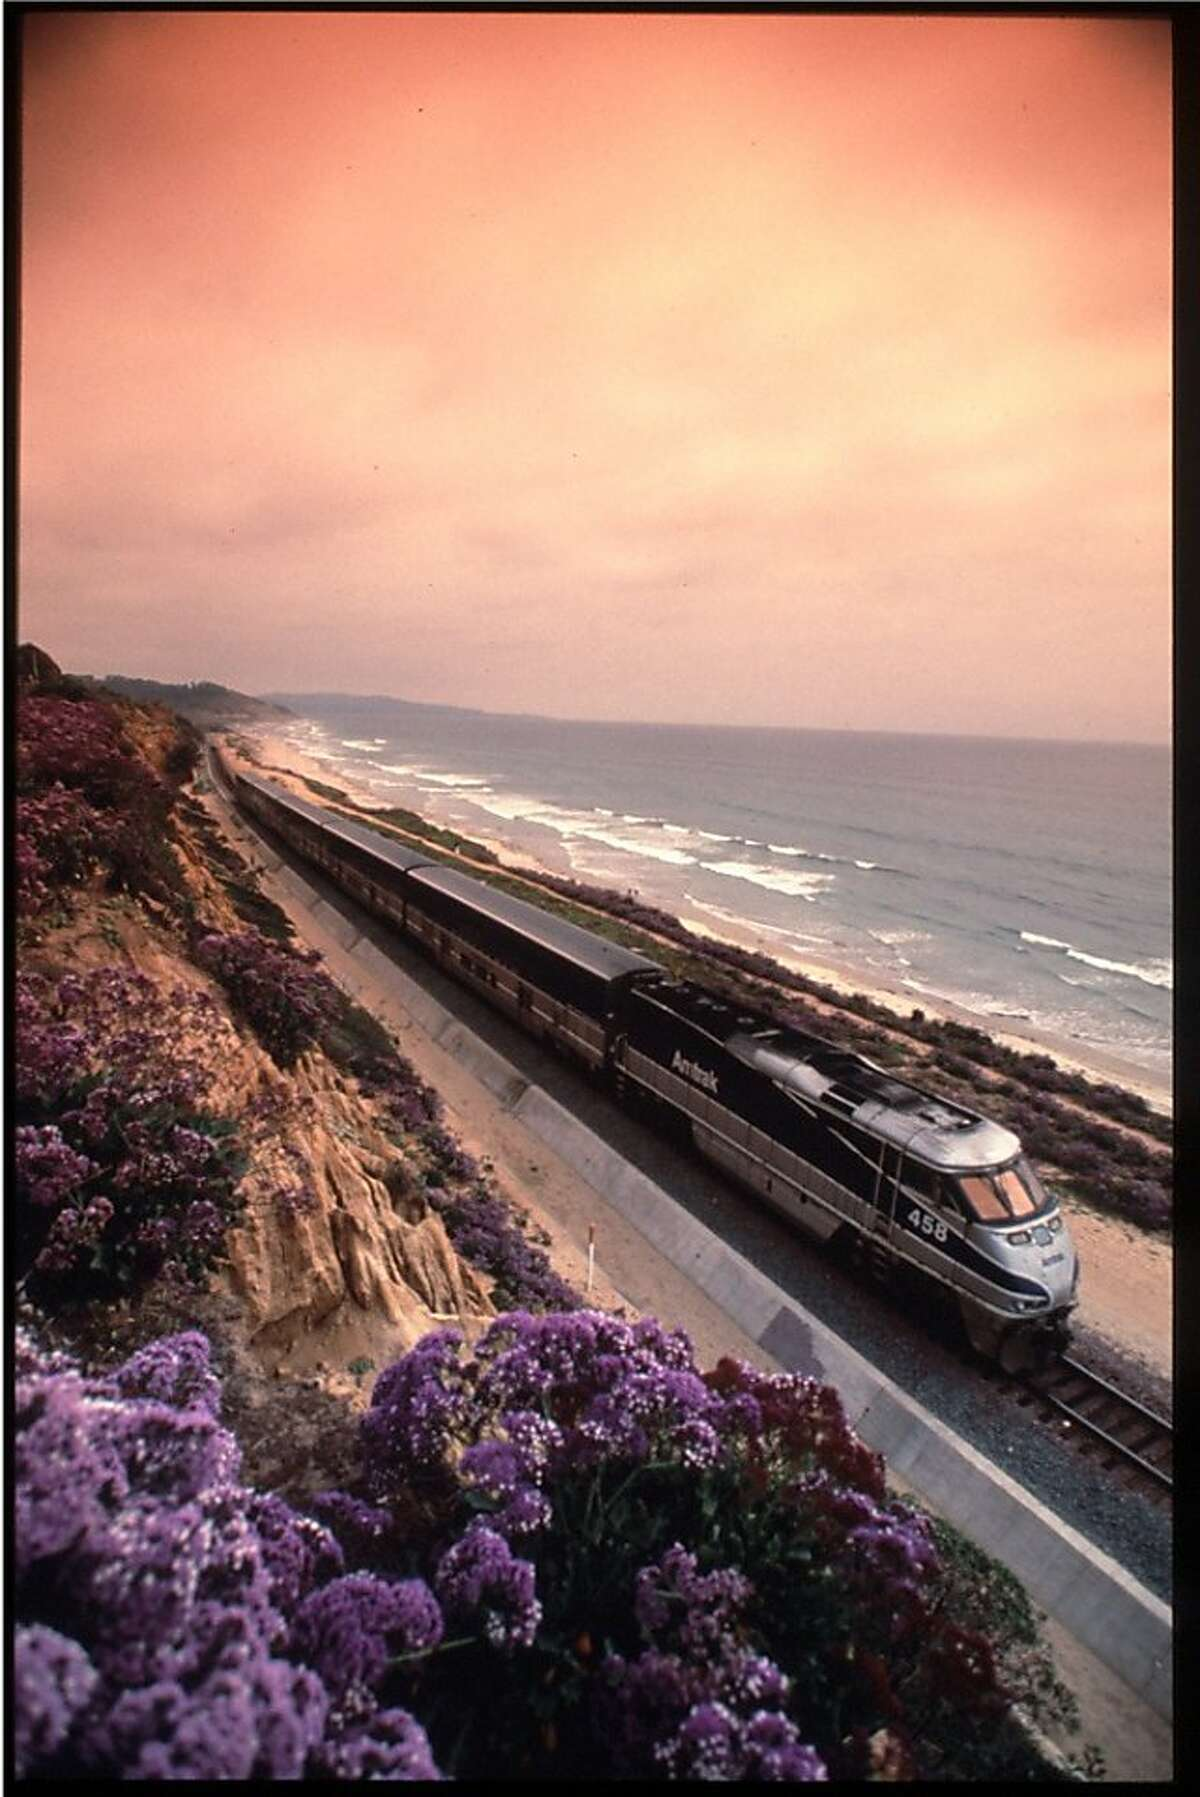 The Amtrack Pacific Surfliner